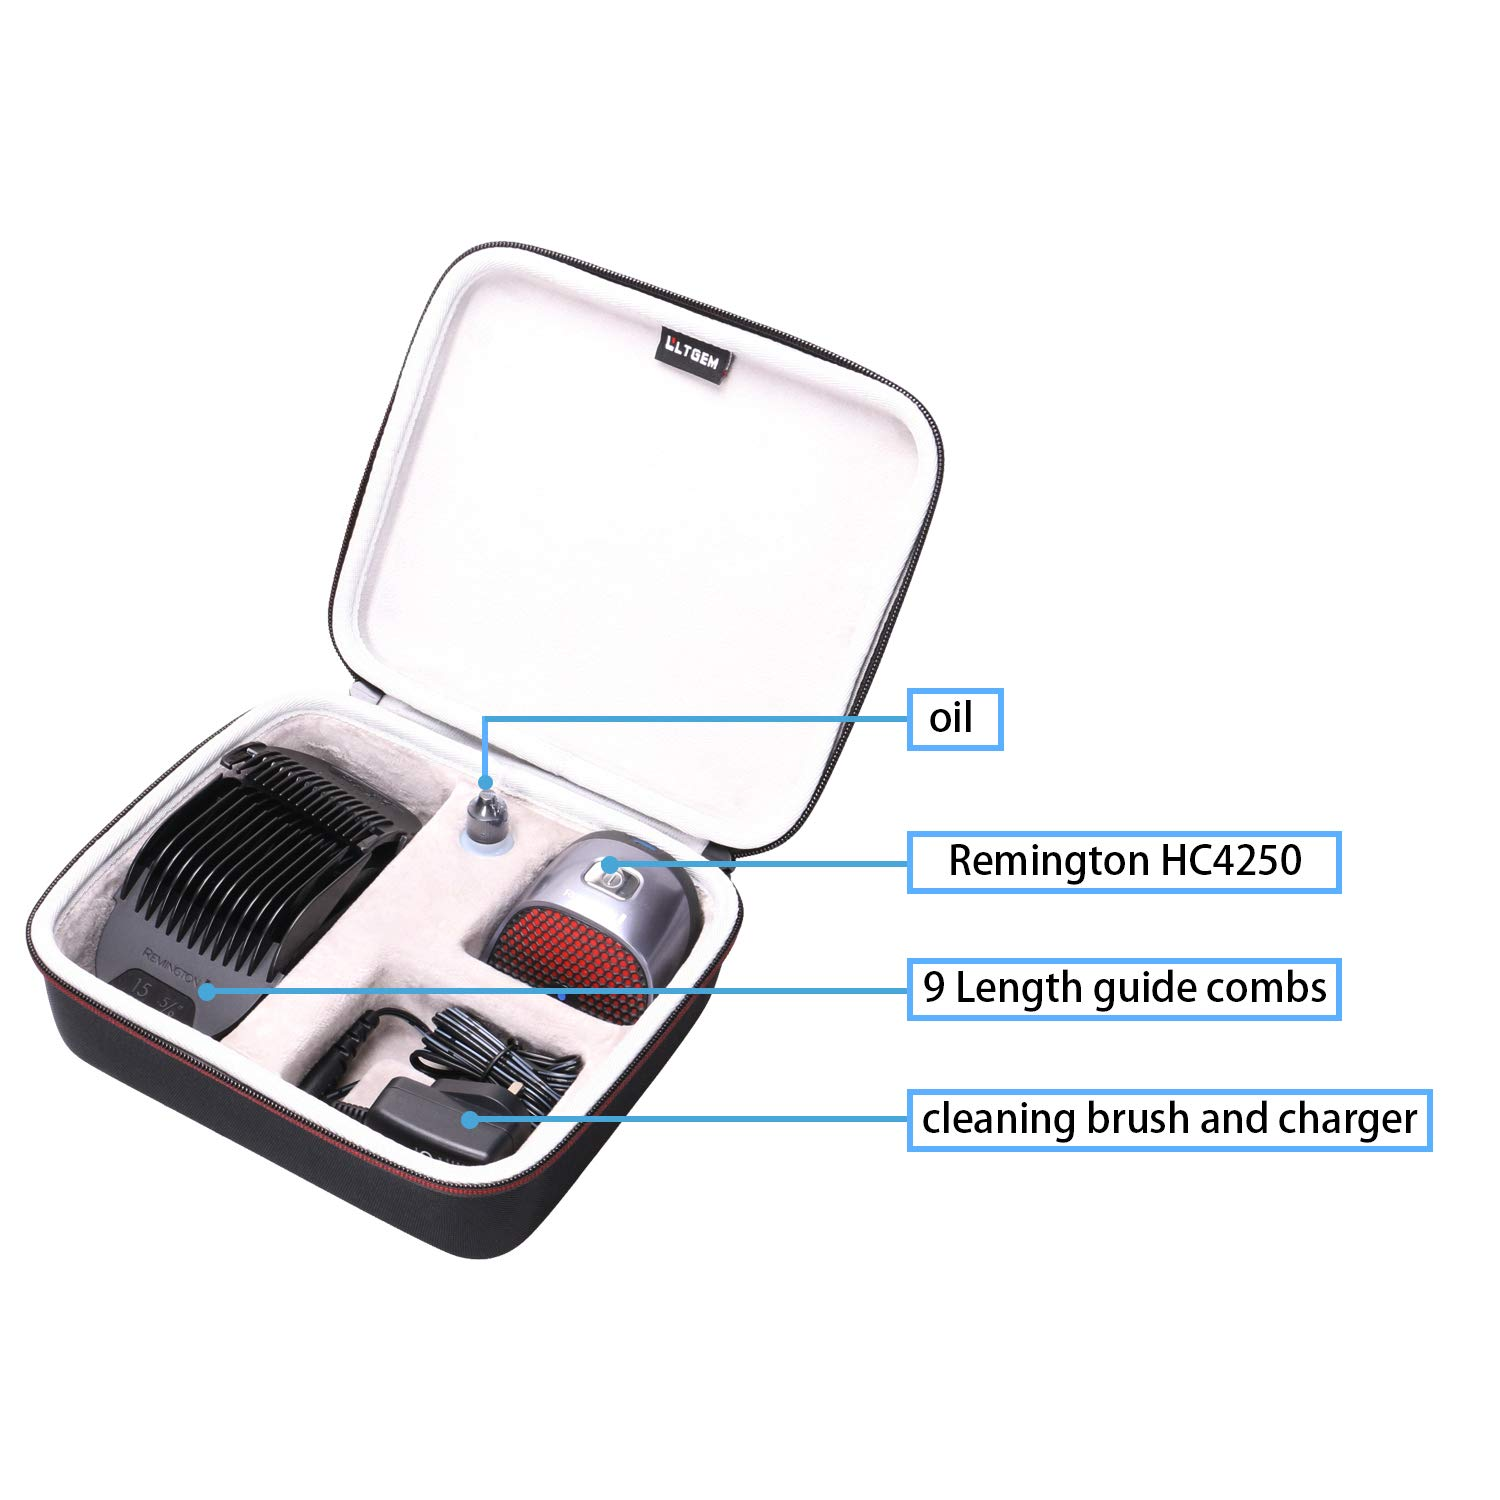 LTGEM Hard Travel Carrying Case for Remington HC4250 Shortcut Pro Self-Haircut Kit, Hair Clippers Hair Trimmers Clippers by LTGEM (Image #4)